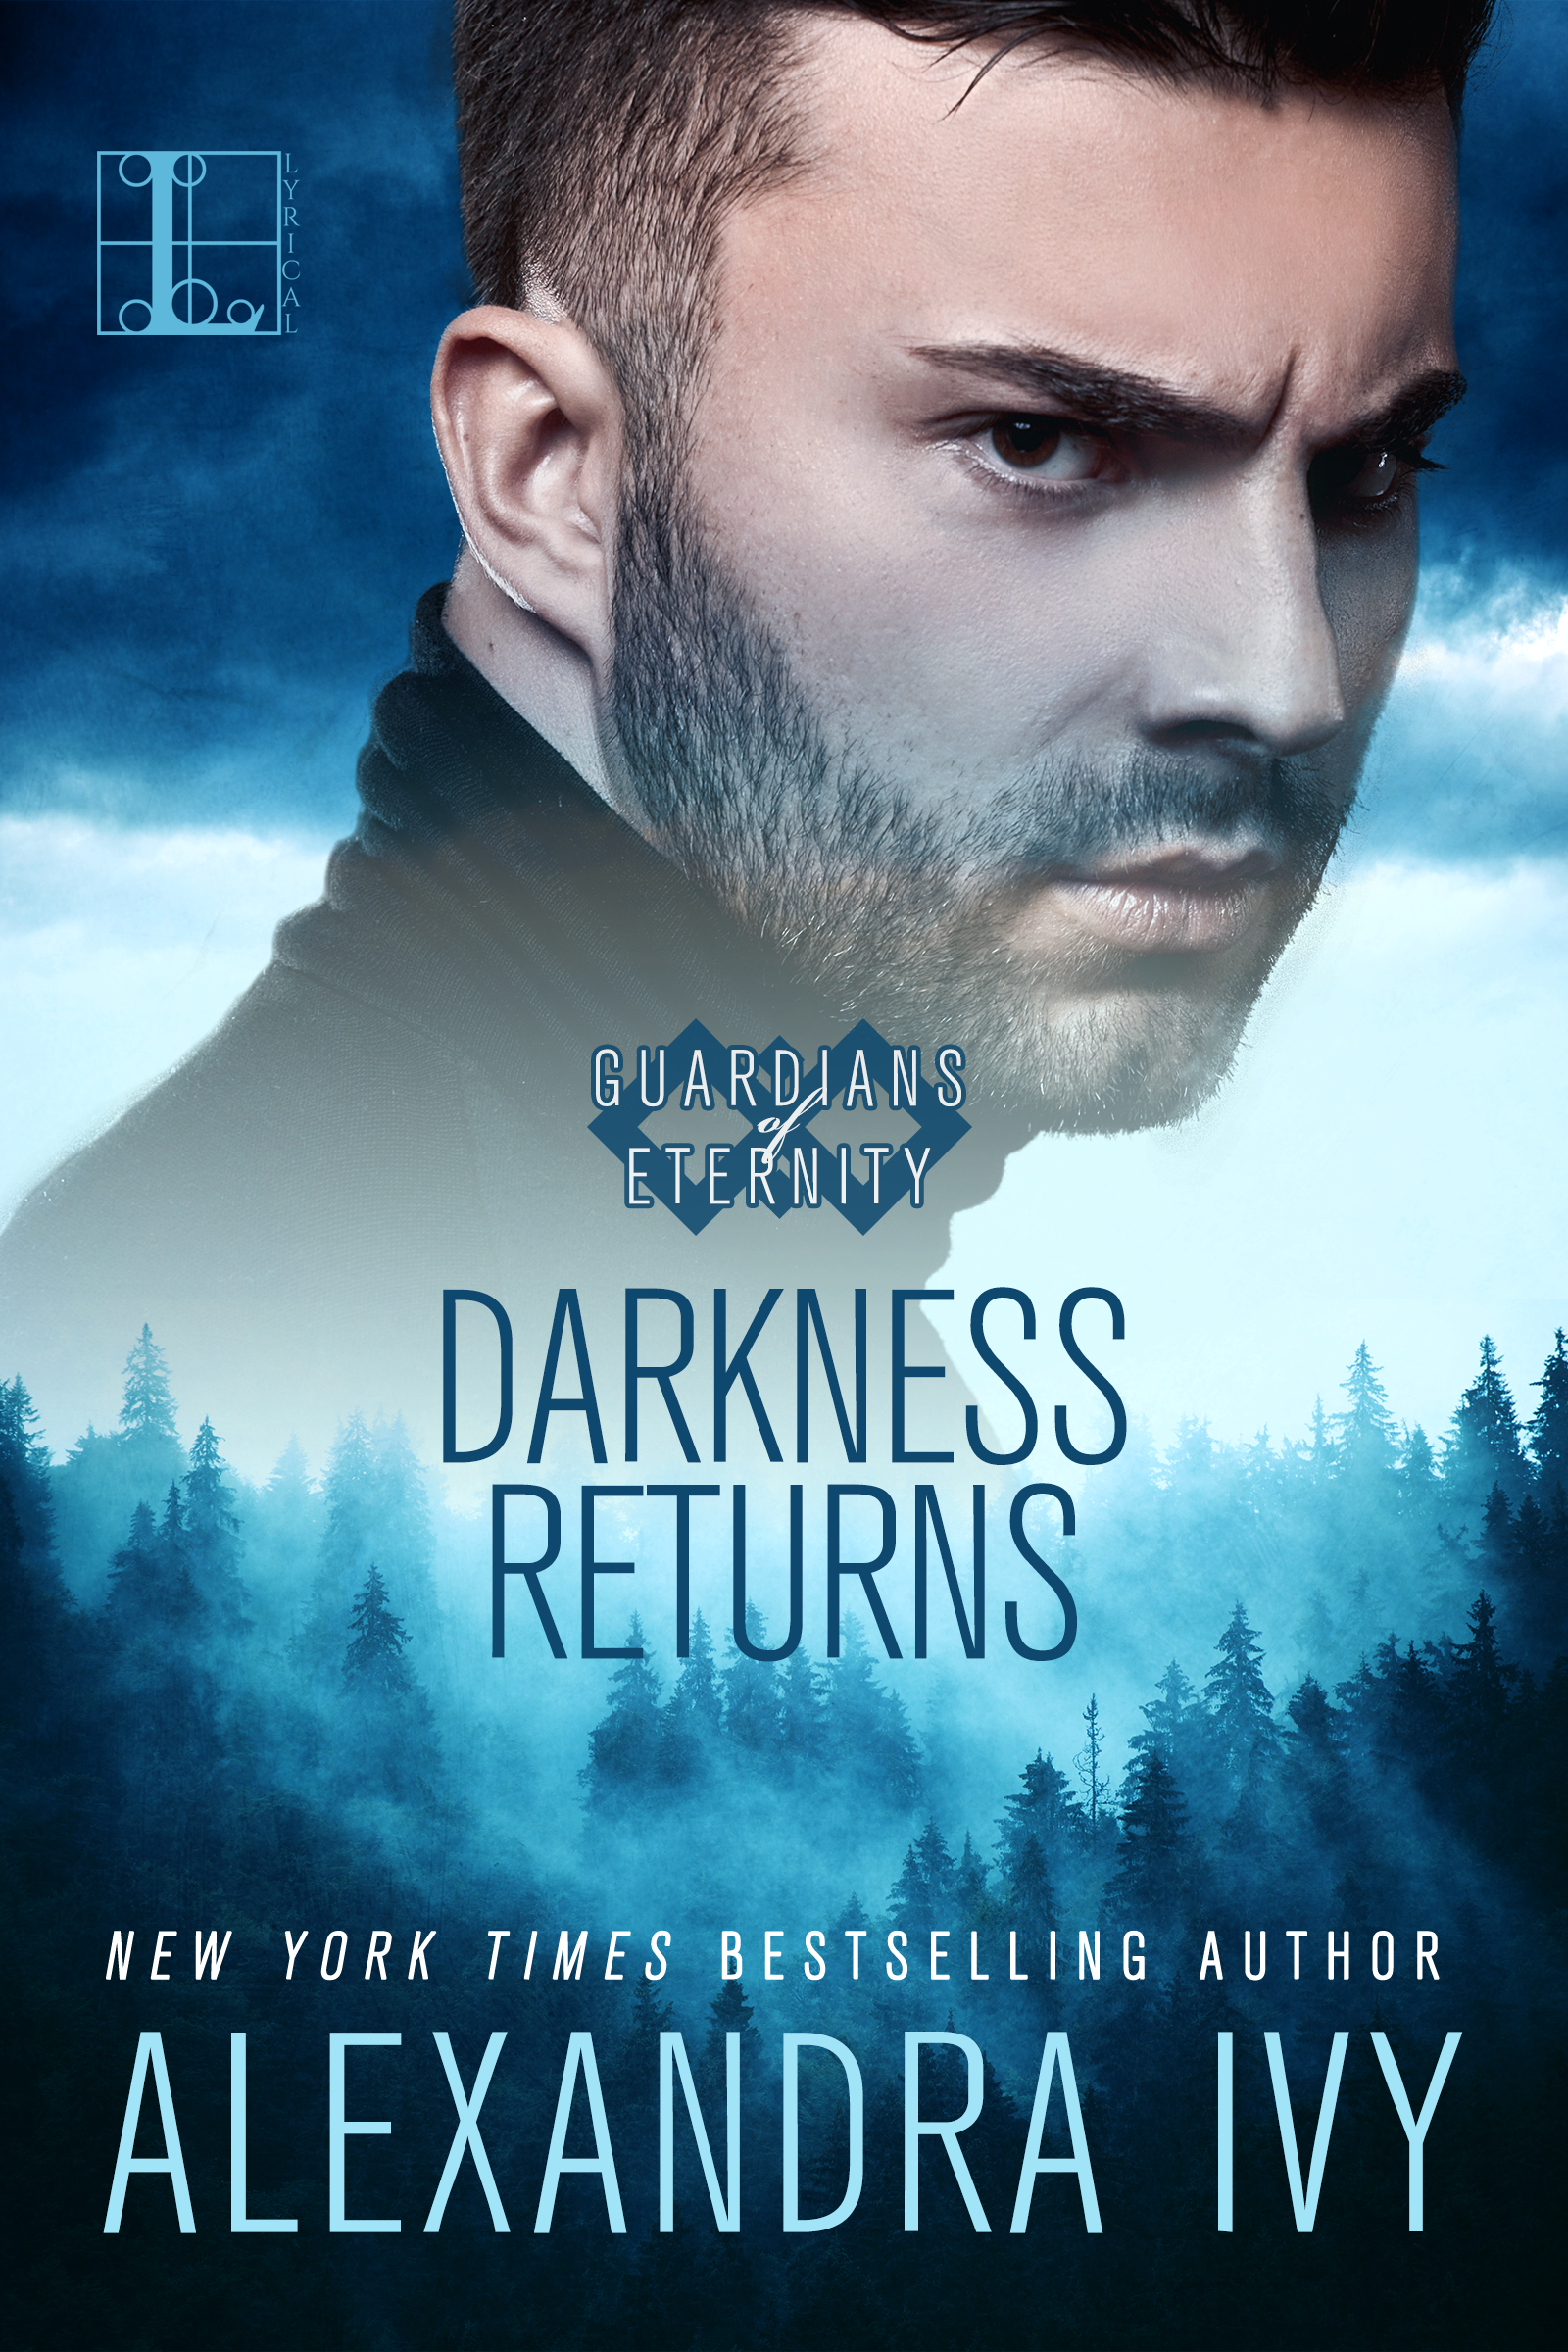 Guardians of Eternity 13: Darkness Returns, by Alexandra Ivy